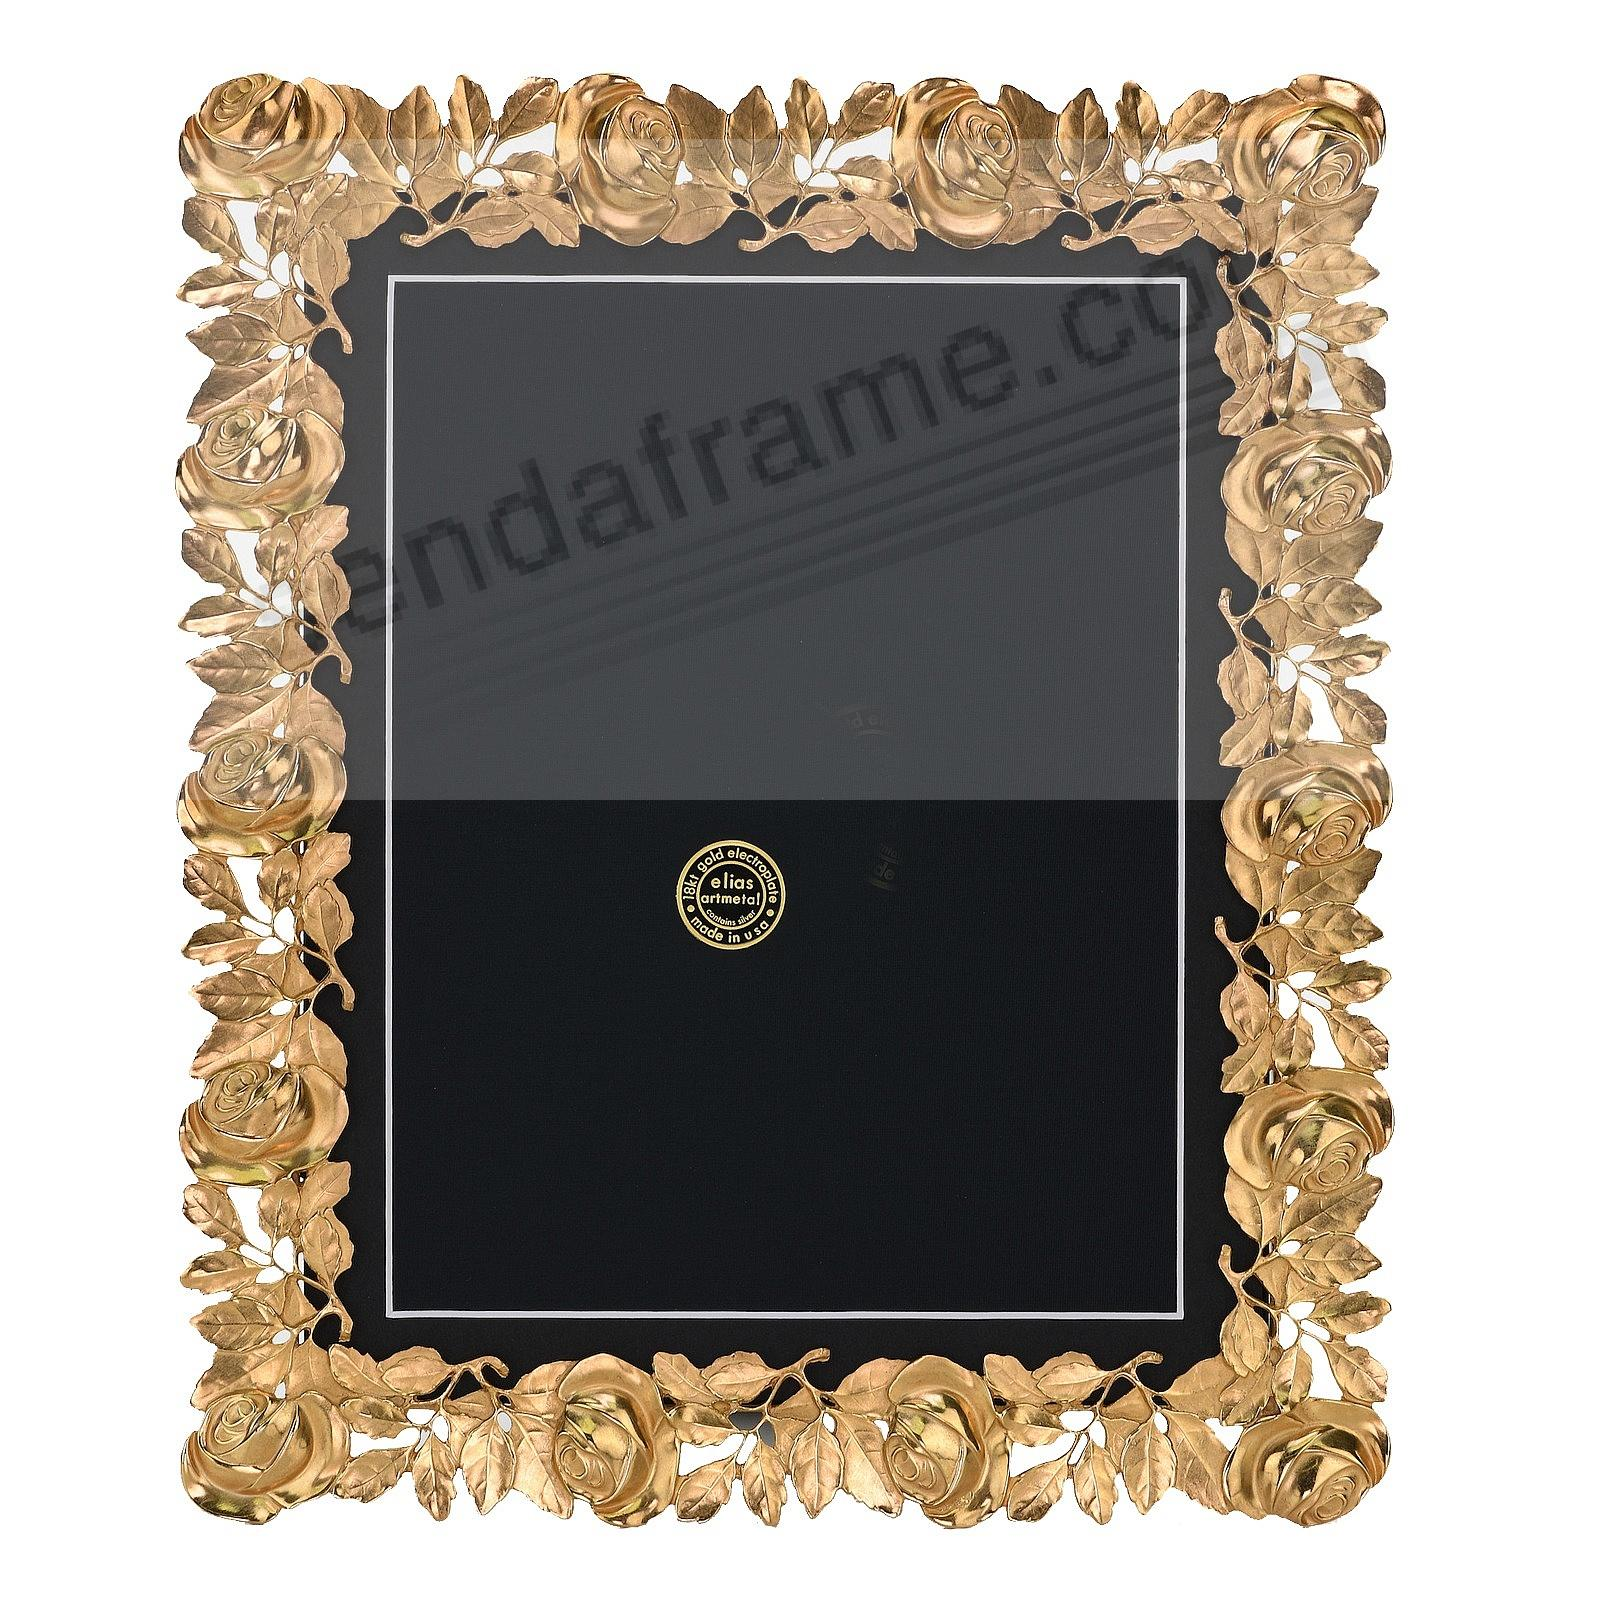 The ROSES FRAME 18kt Gold Vermeil 11x14/8½x11 by Elias Artmetal®